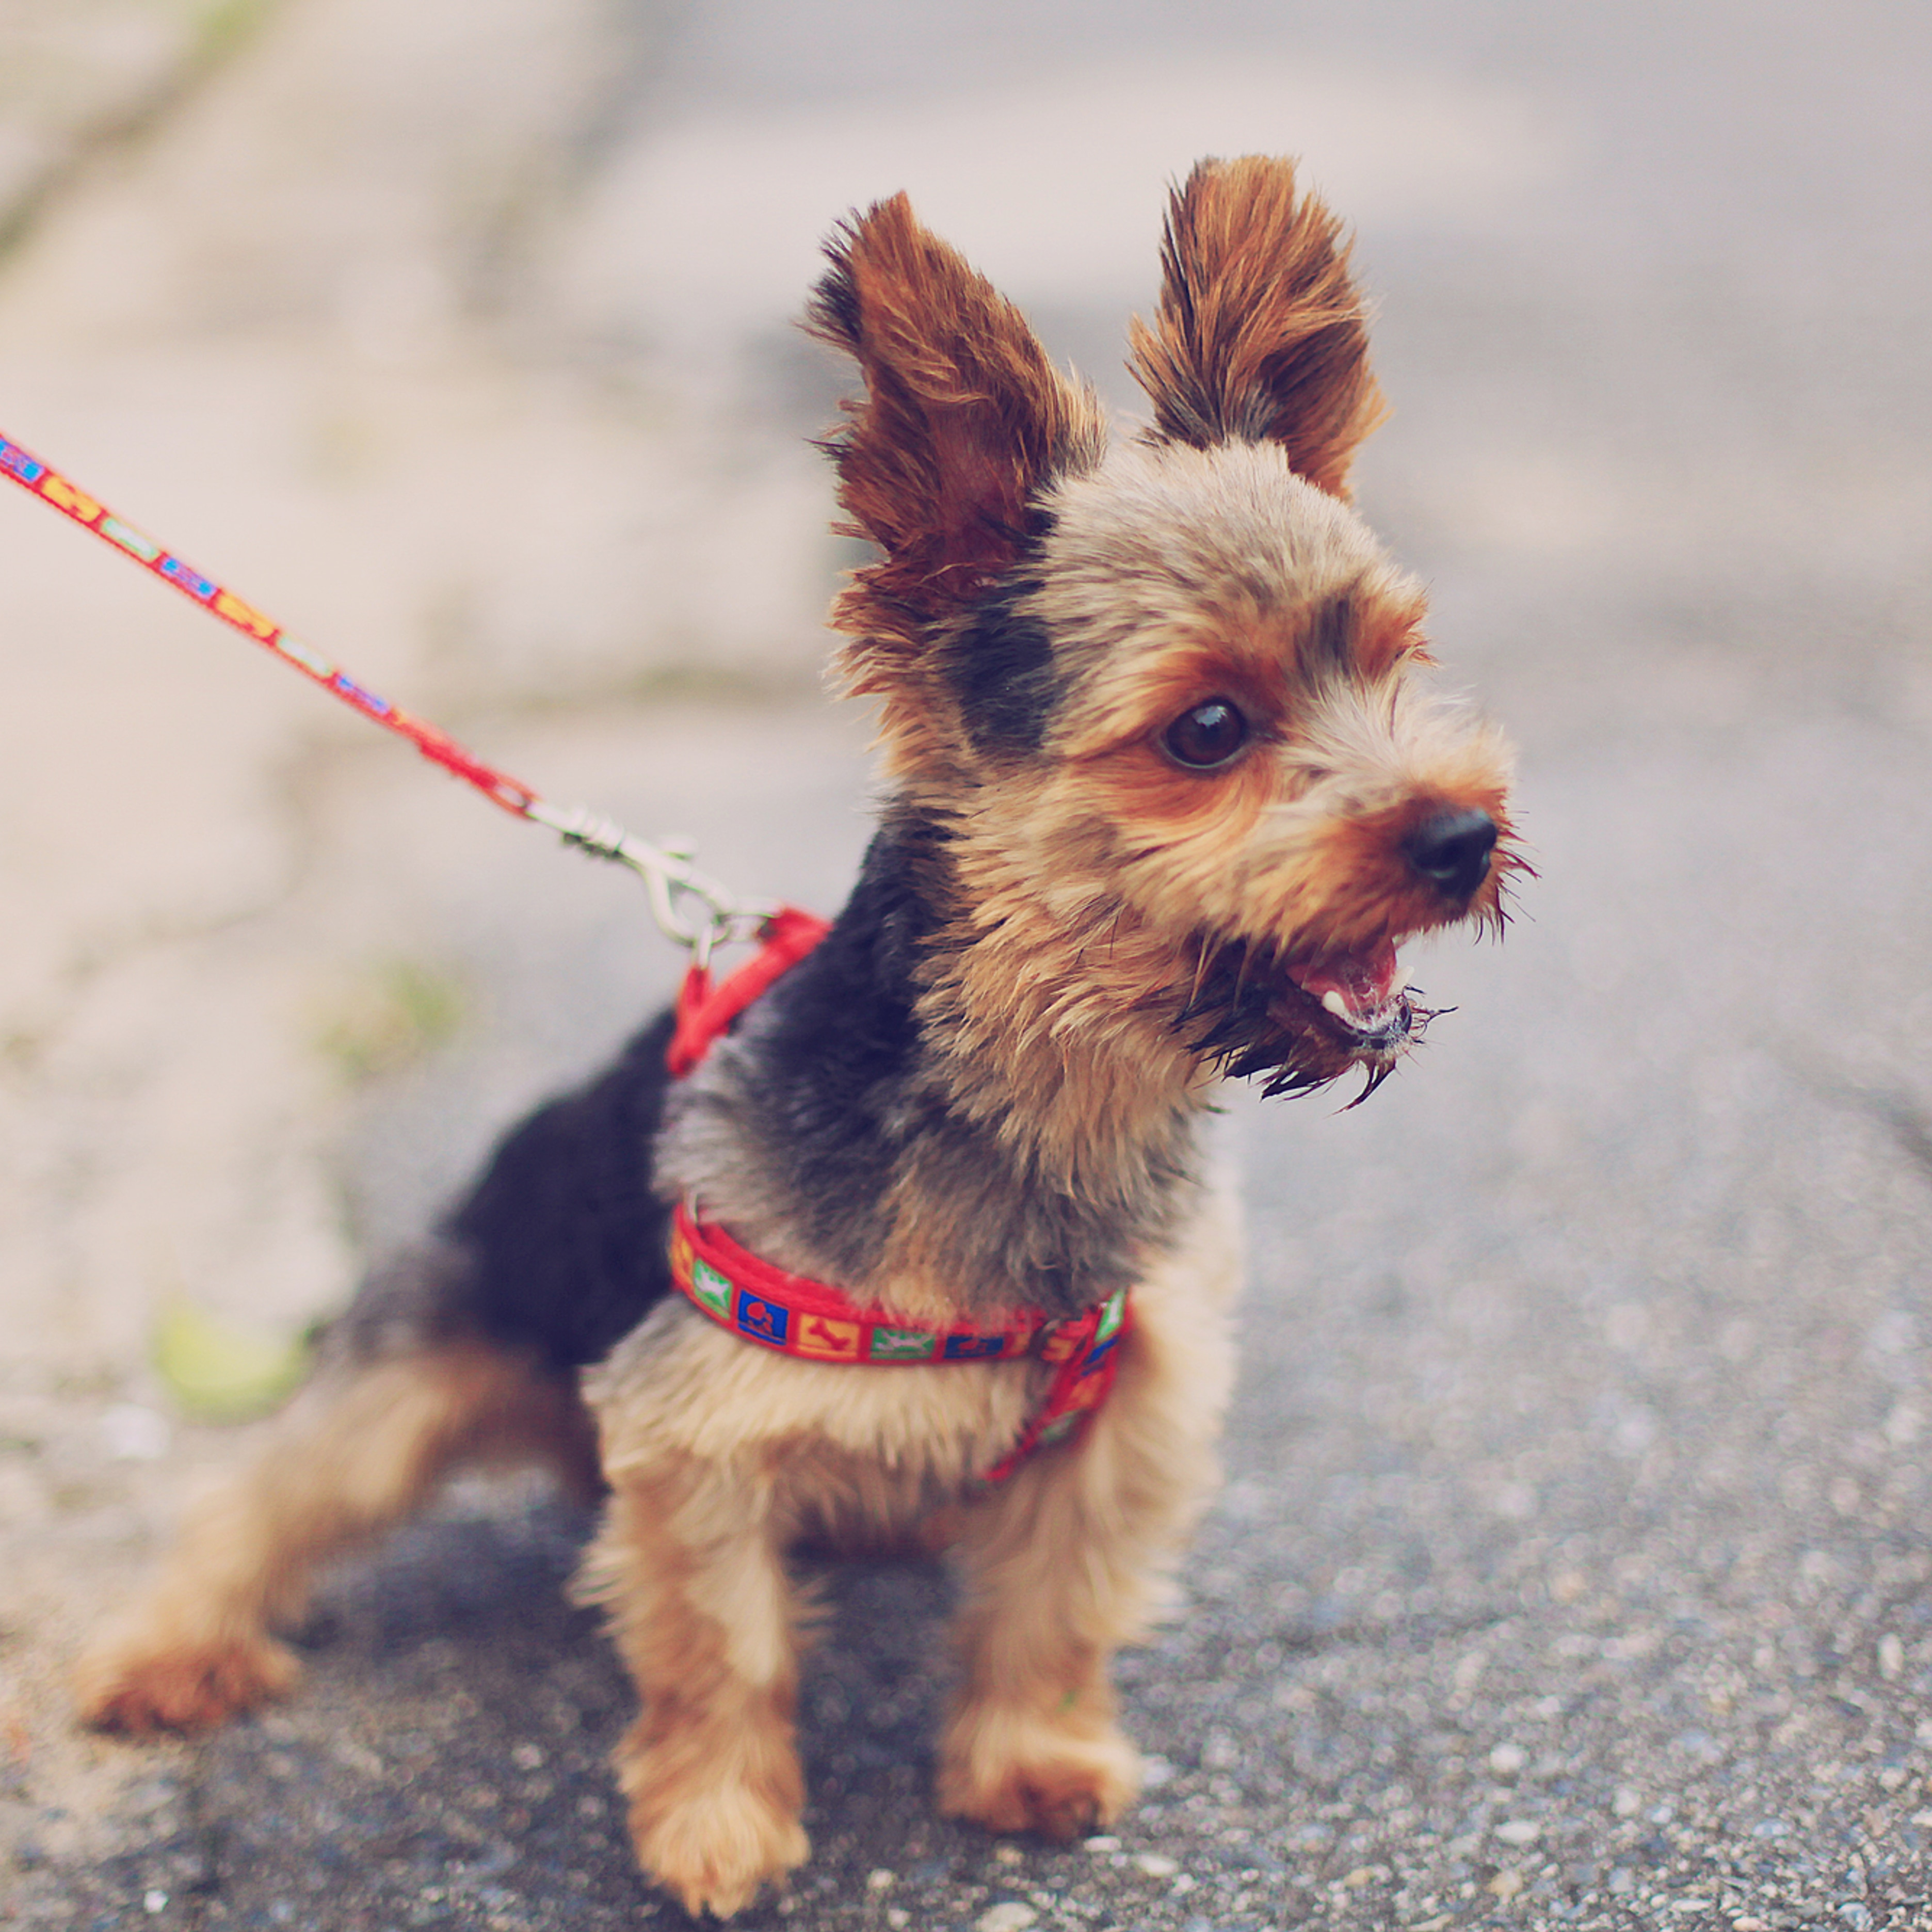 Groom - Small Breed - From £20*